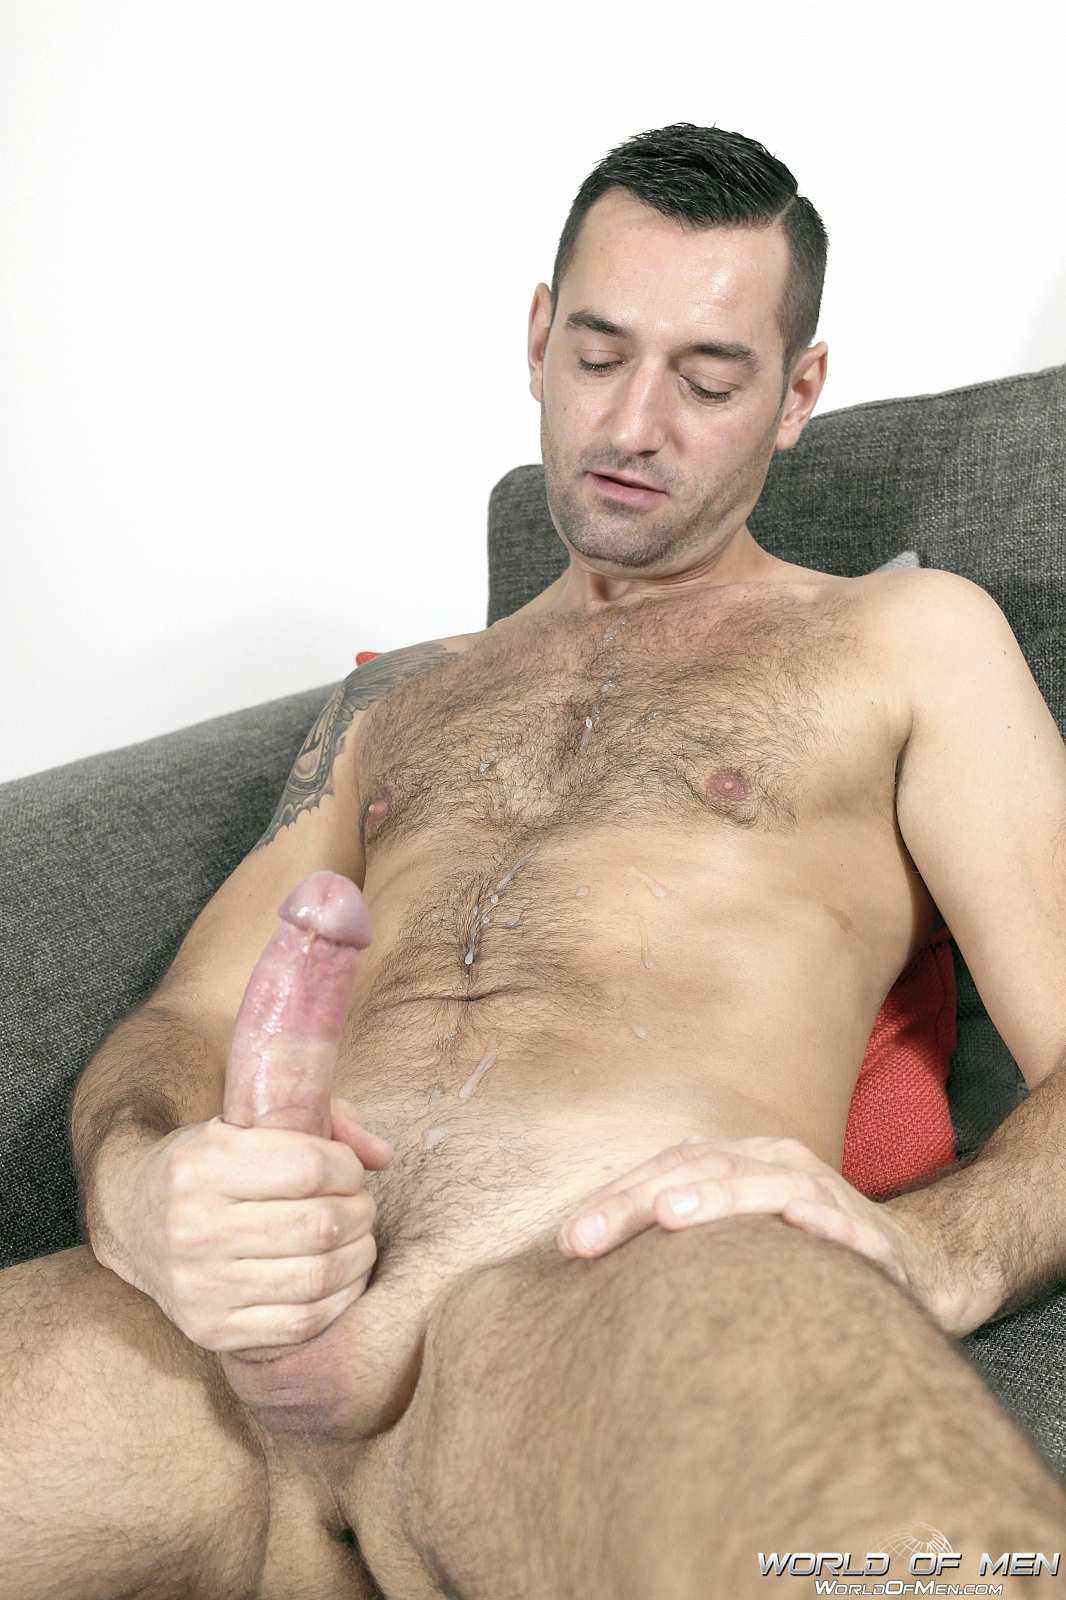 World Of Men Chris ADam Big Uncut Cock Jerk Off Masturbation Amateur Gay Porn 14 Hairy Sexy Stud Fingers His Ass And Plays With His Huge Uncut Cock